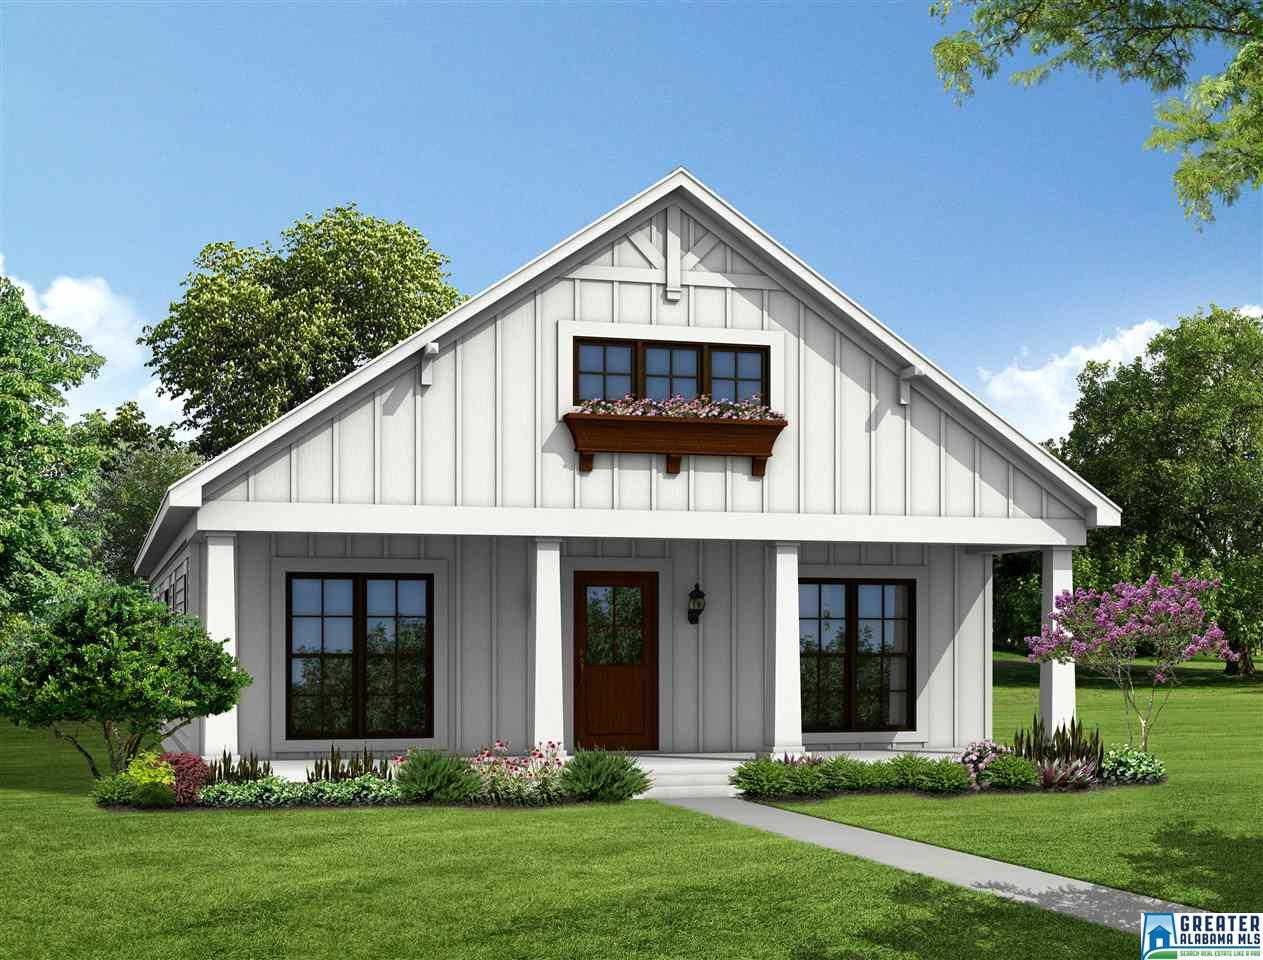 Grants Mill Valley - New homes coming to Irondale 795195